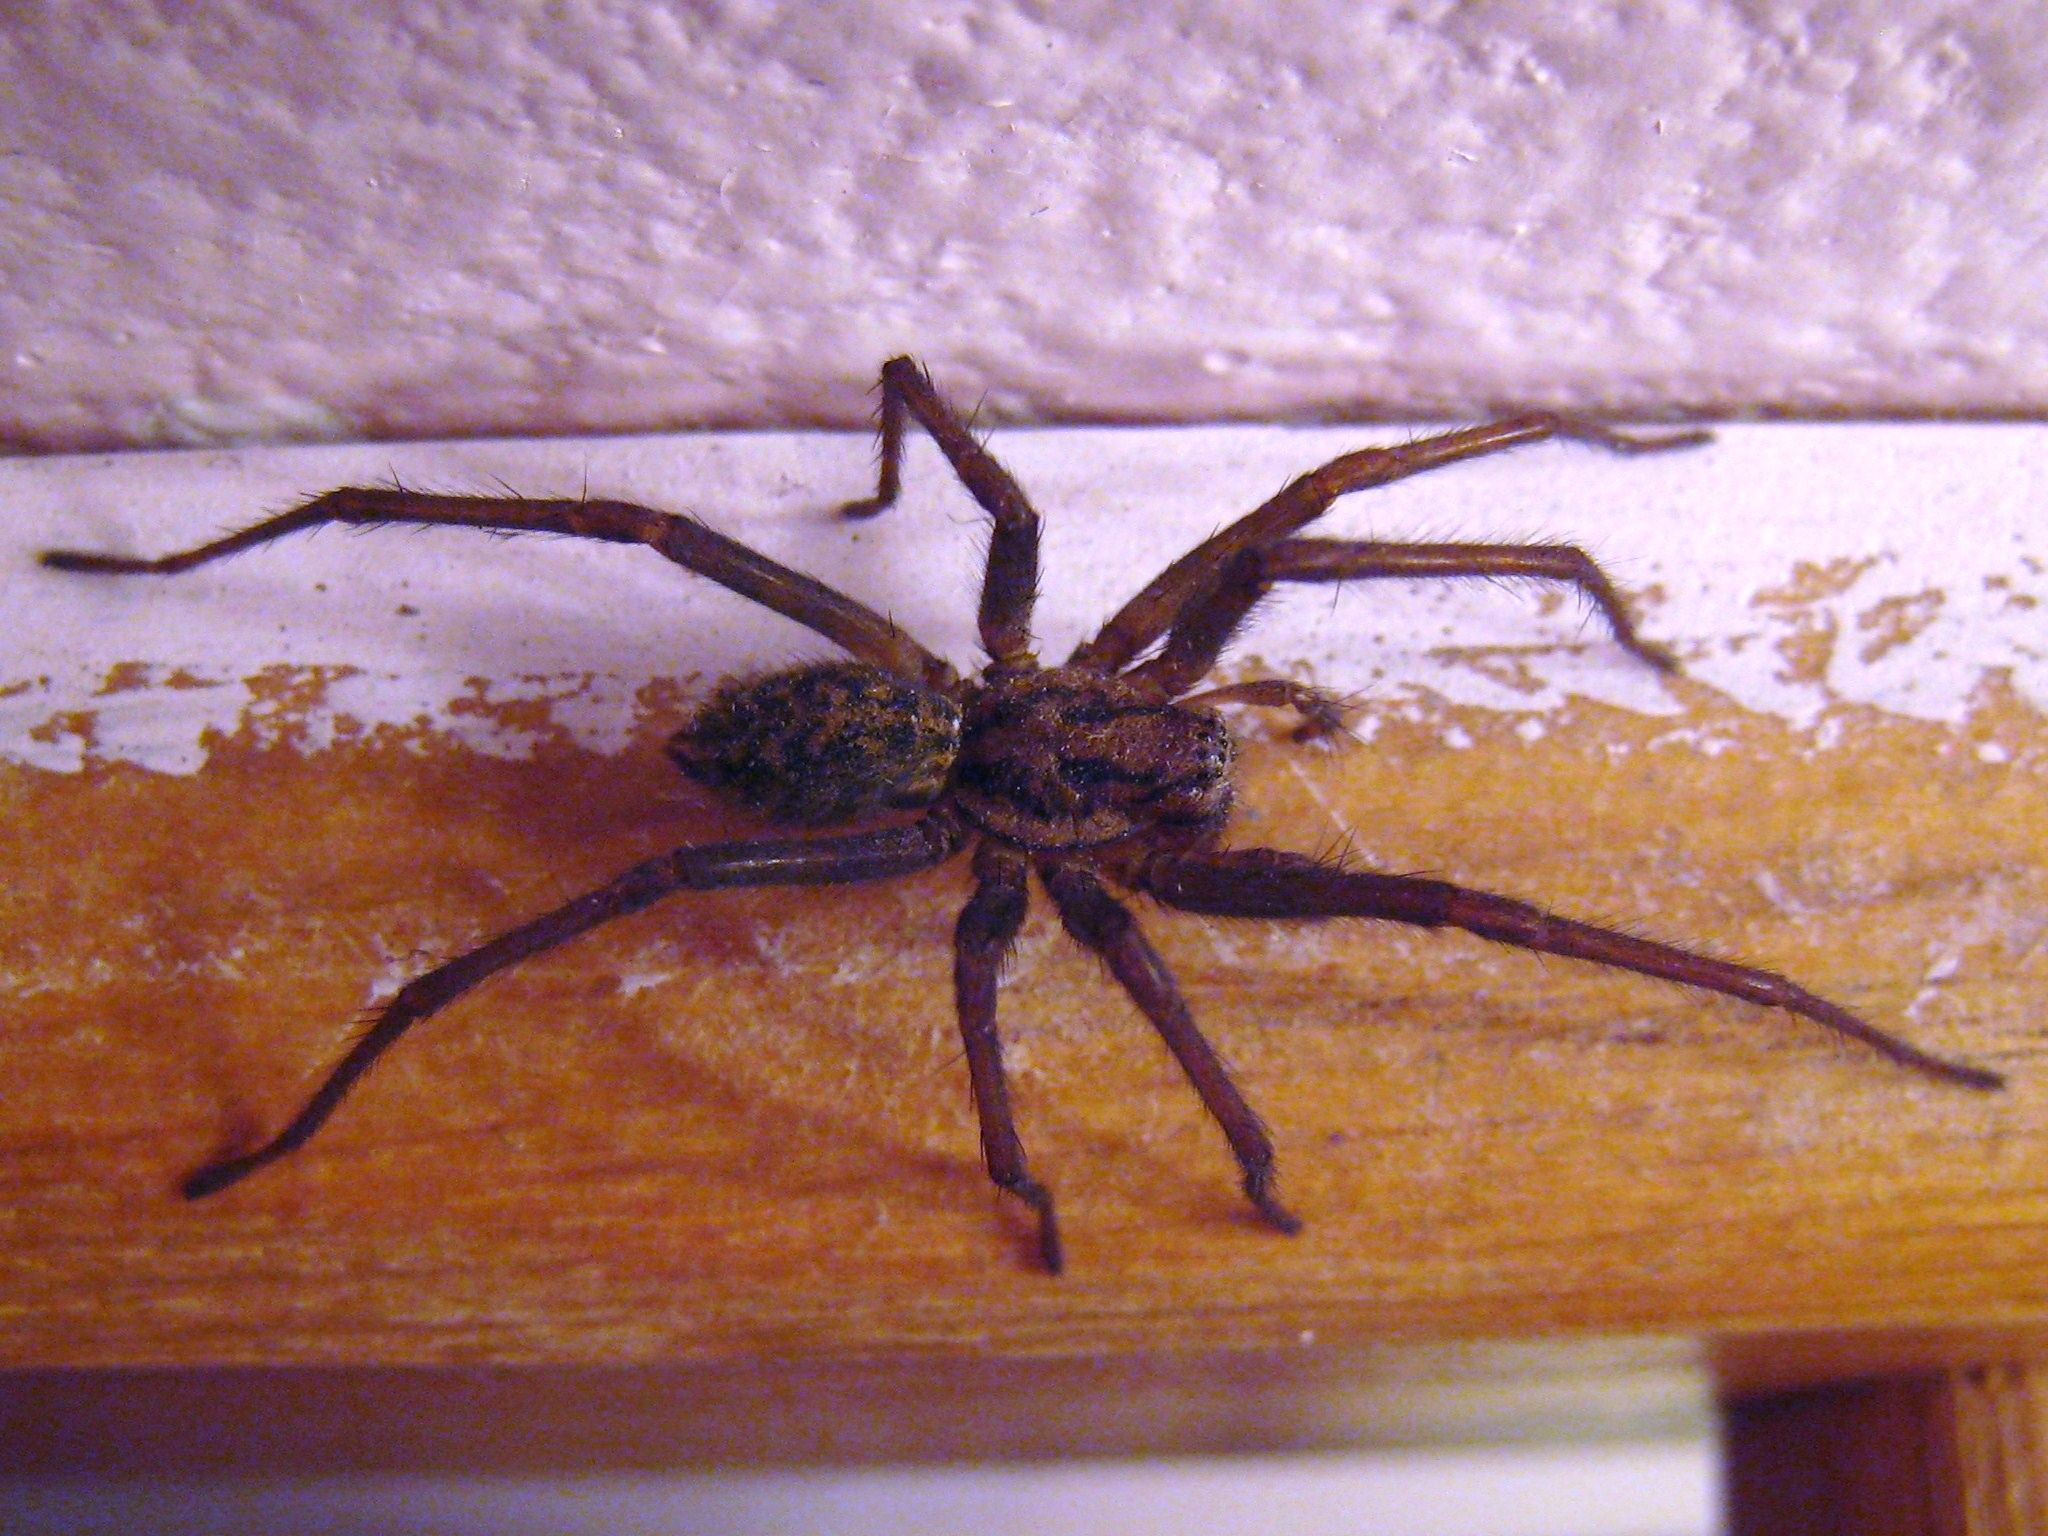 What do you know about… spiders?